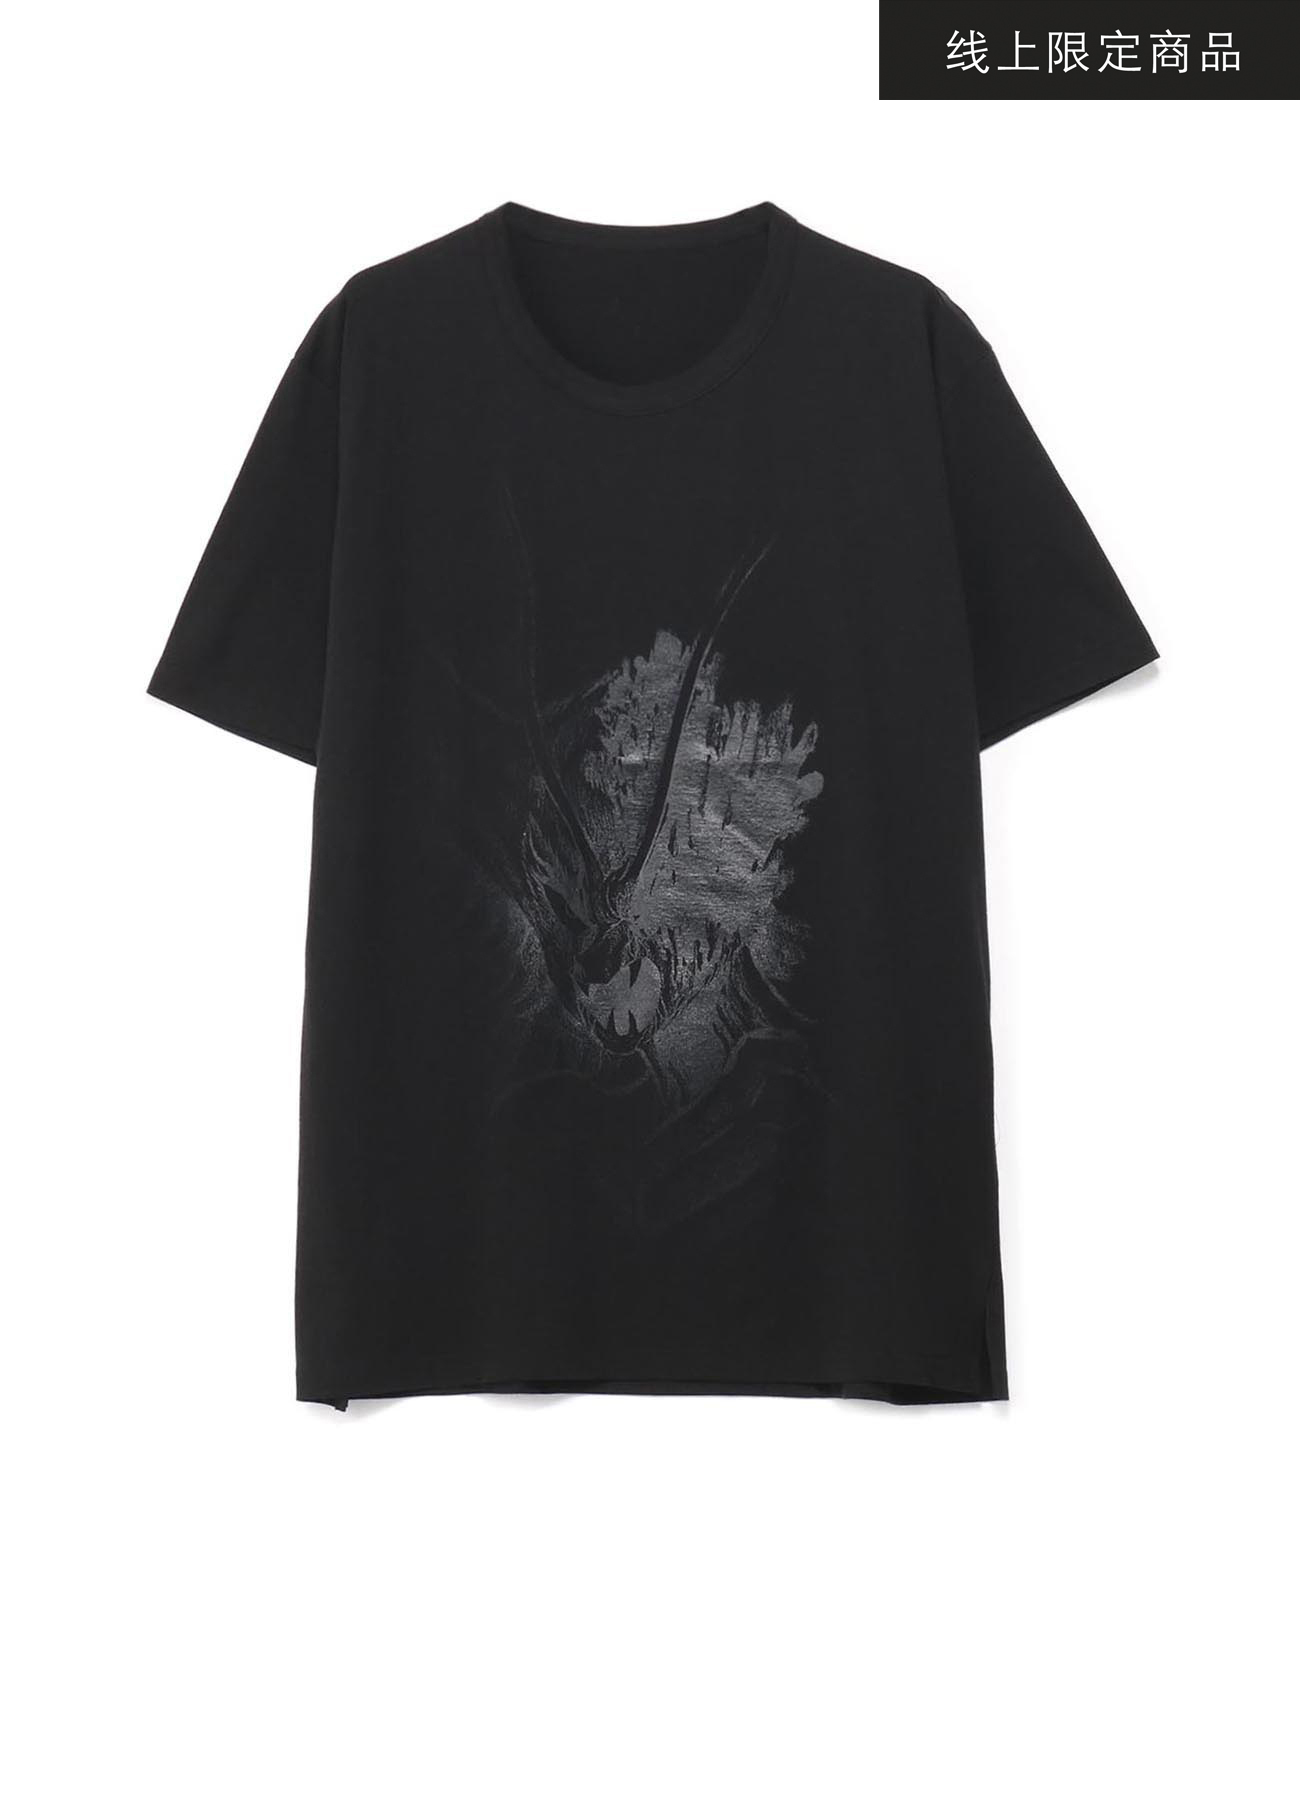 DEVILMAN-デビルマン- Collaboration pt Tshirt